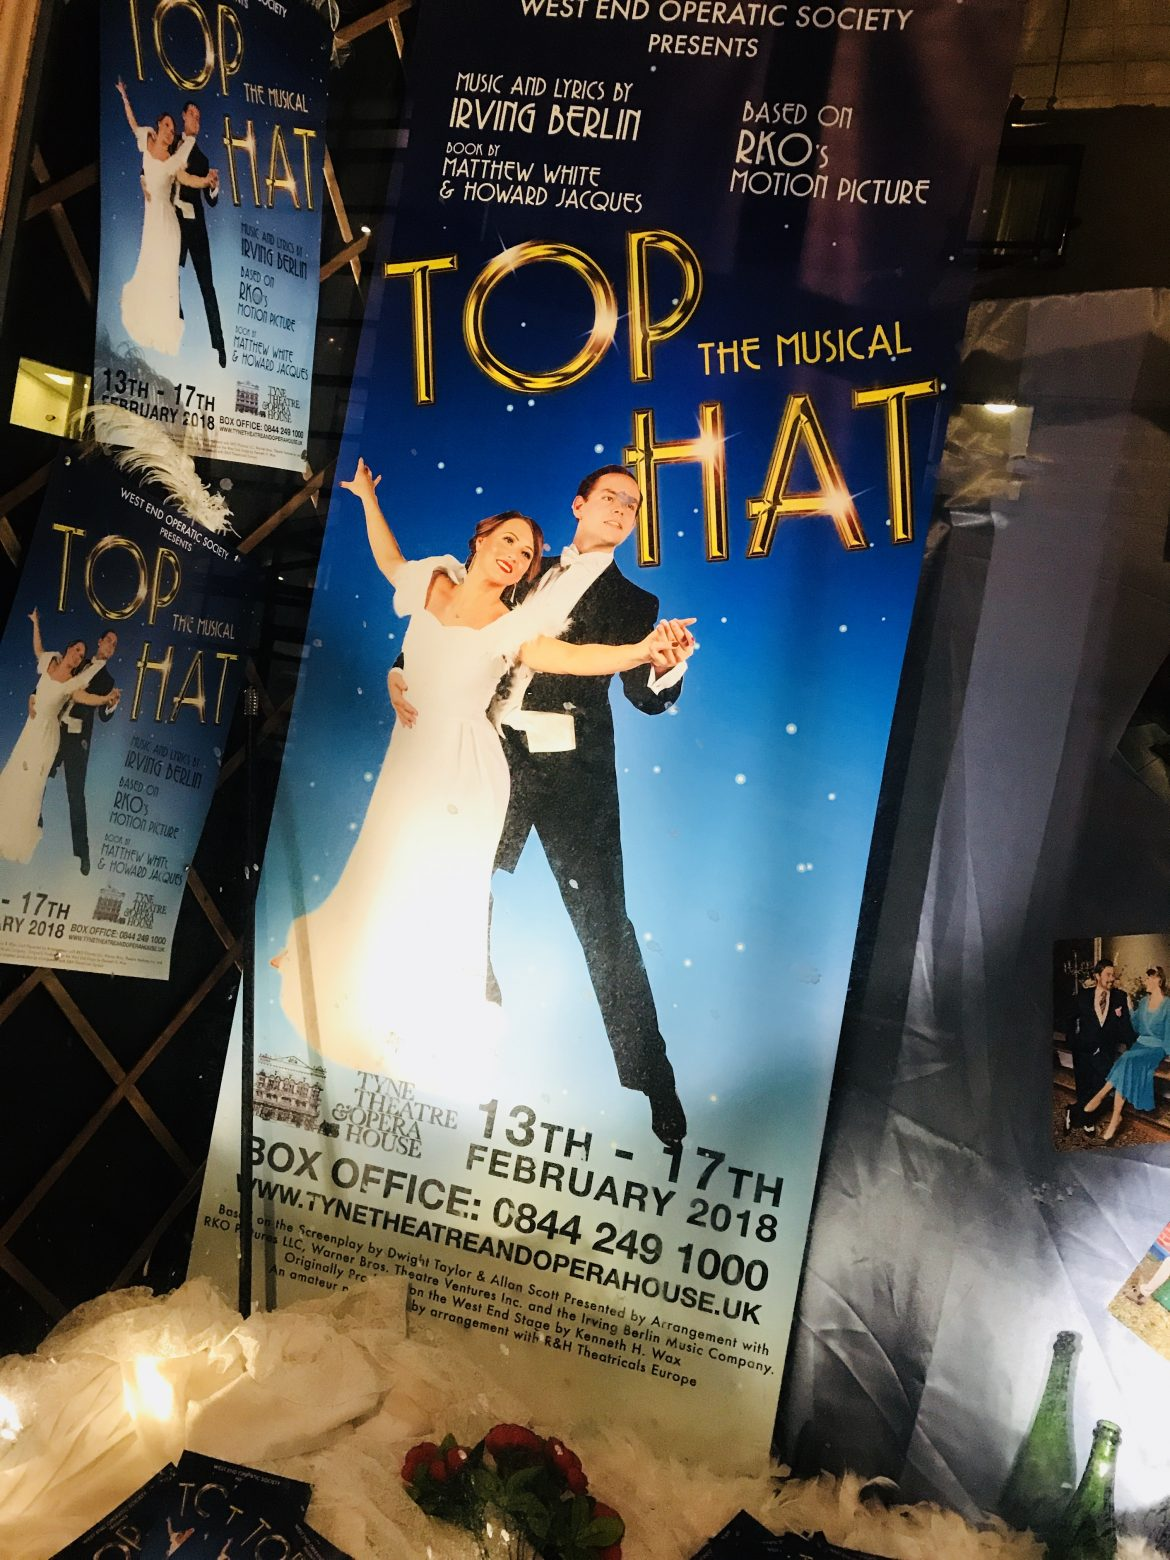 Top-Hat-Review-Tyne-Theatre-Opera-House